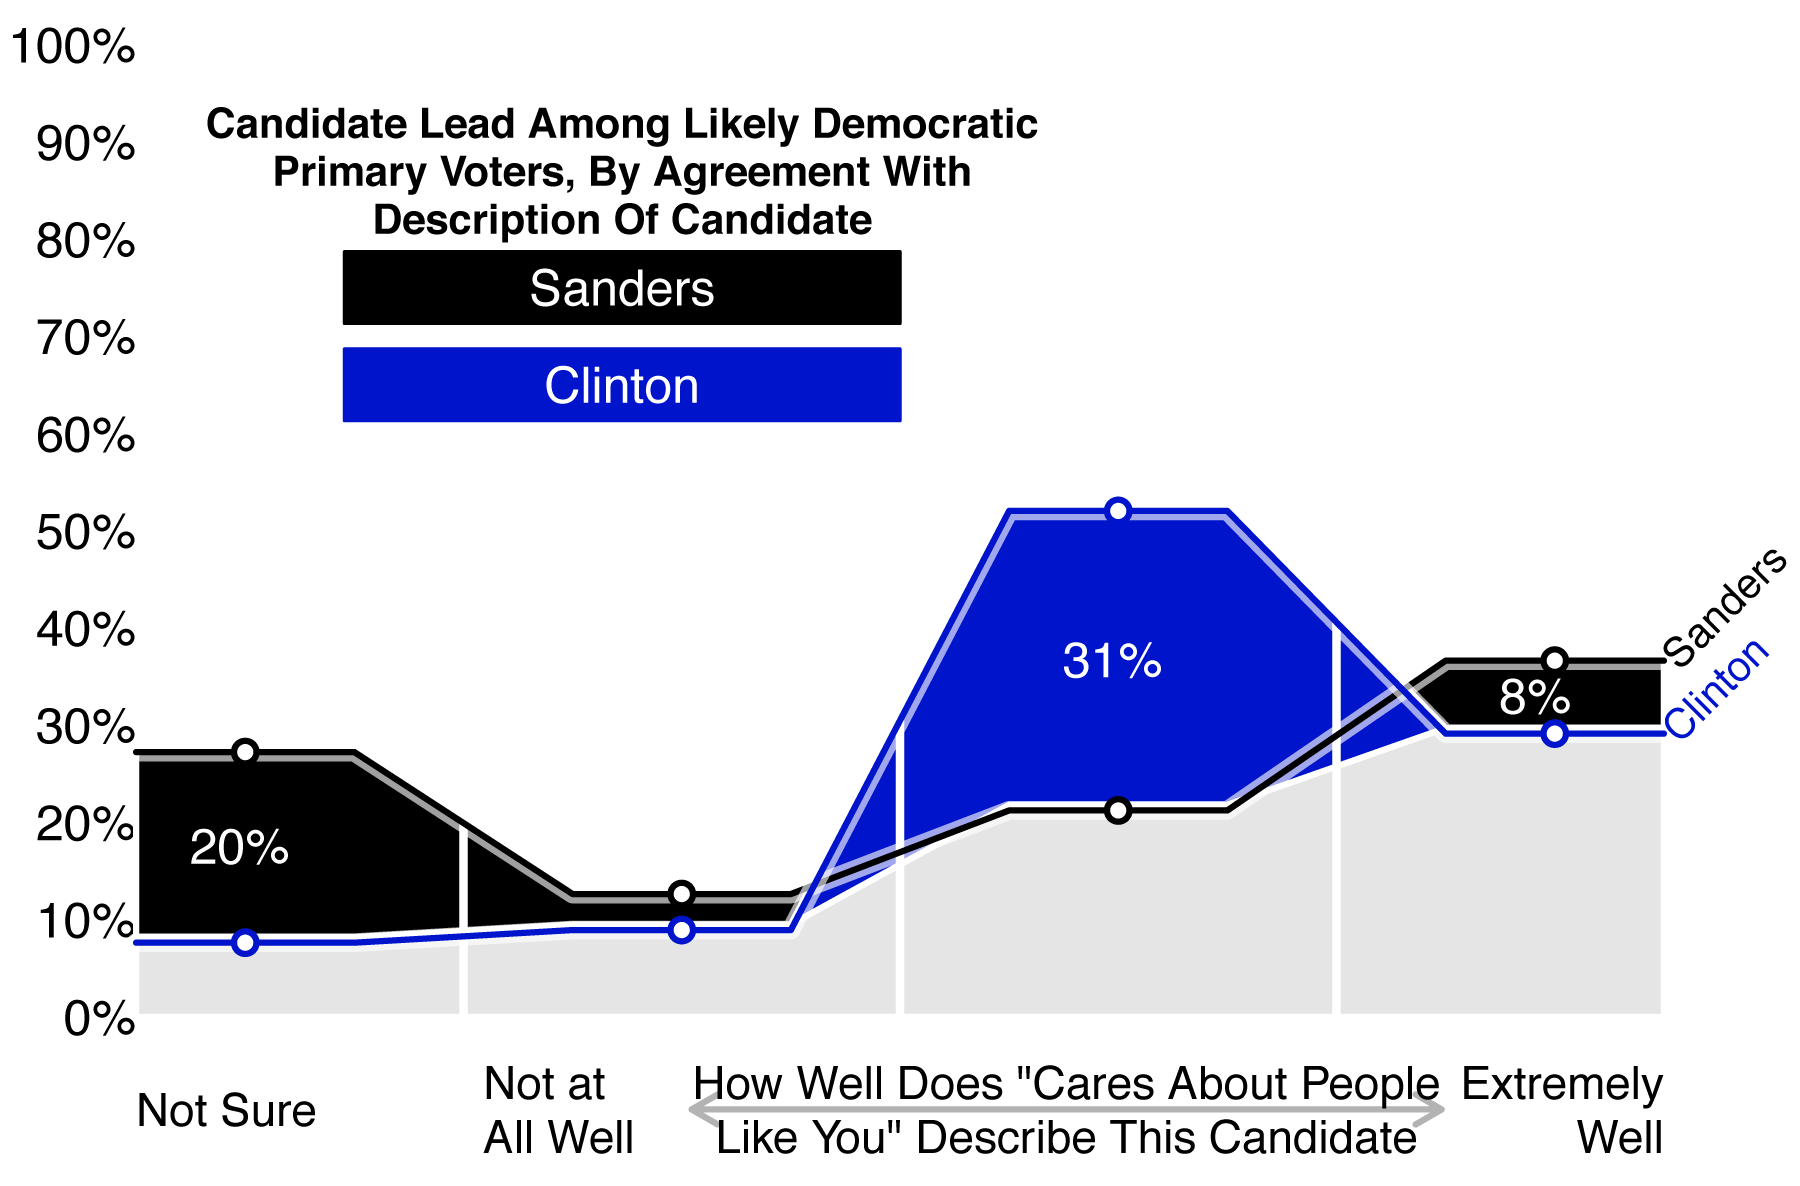 Figure 6: Candidate Lead Among Likely Democratic Primary Voters, by Agreement with Description of Candidate